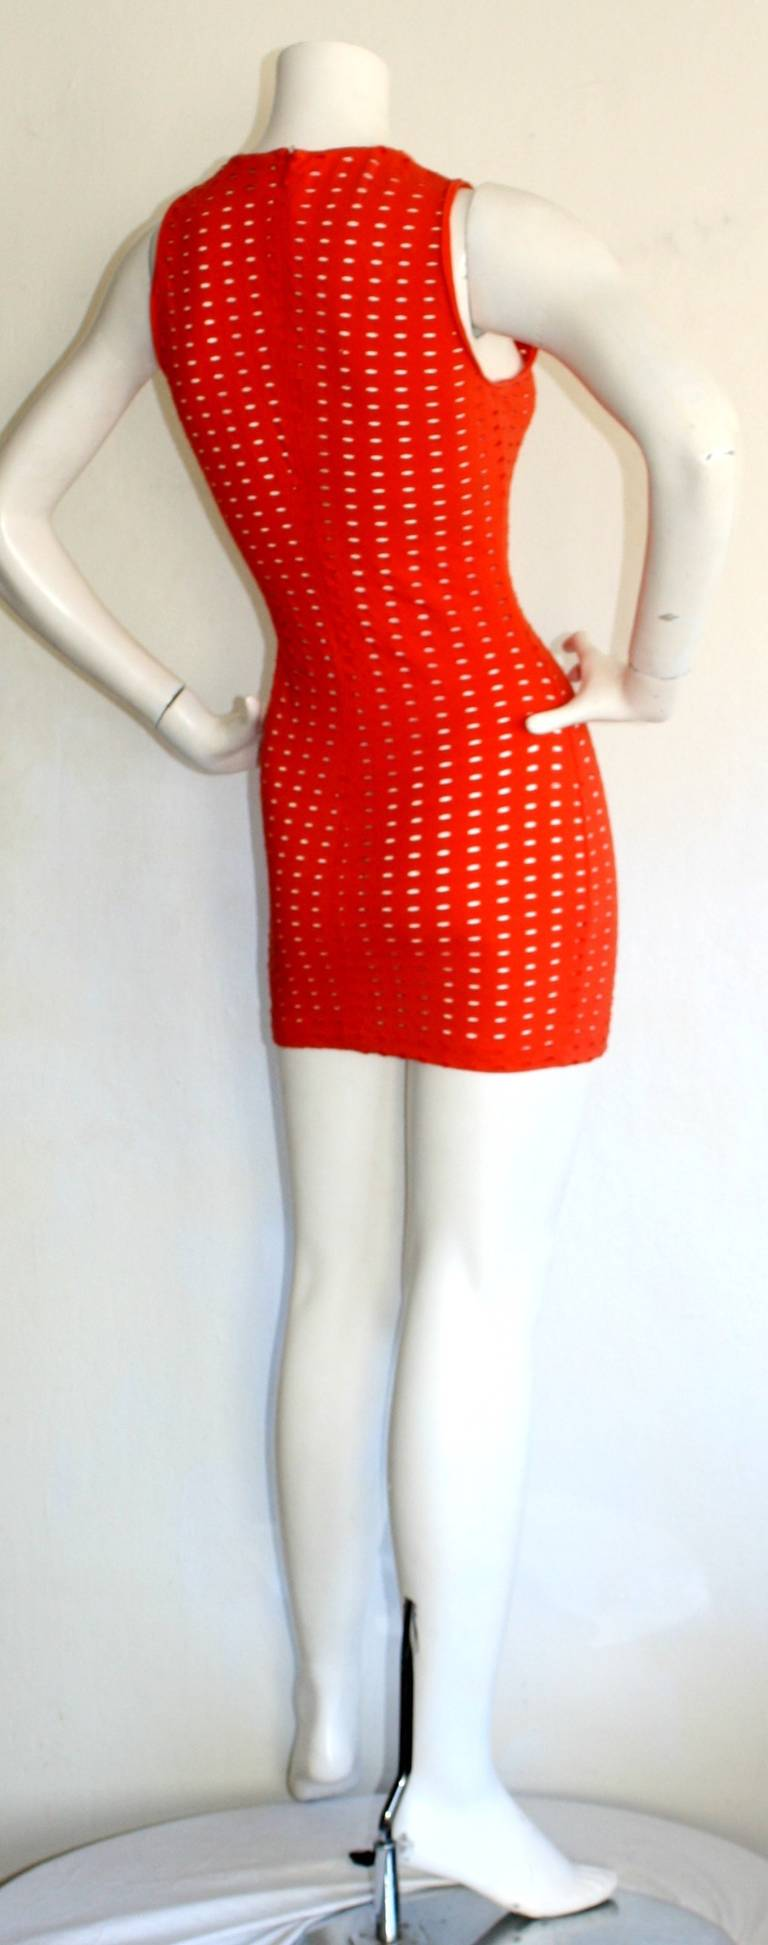 Gianni Versace Couture Vintage Red Cut - Out Dress 1990s Pre - Death 5